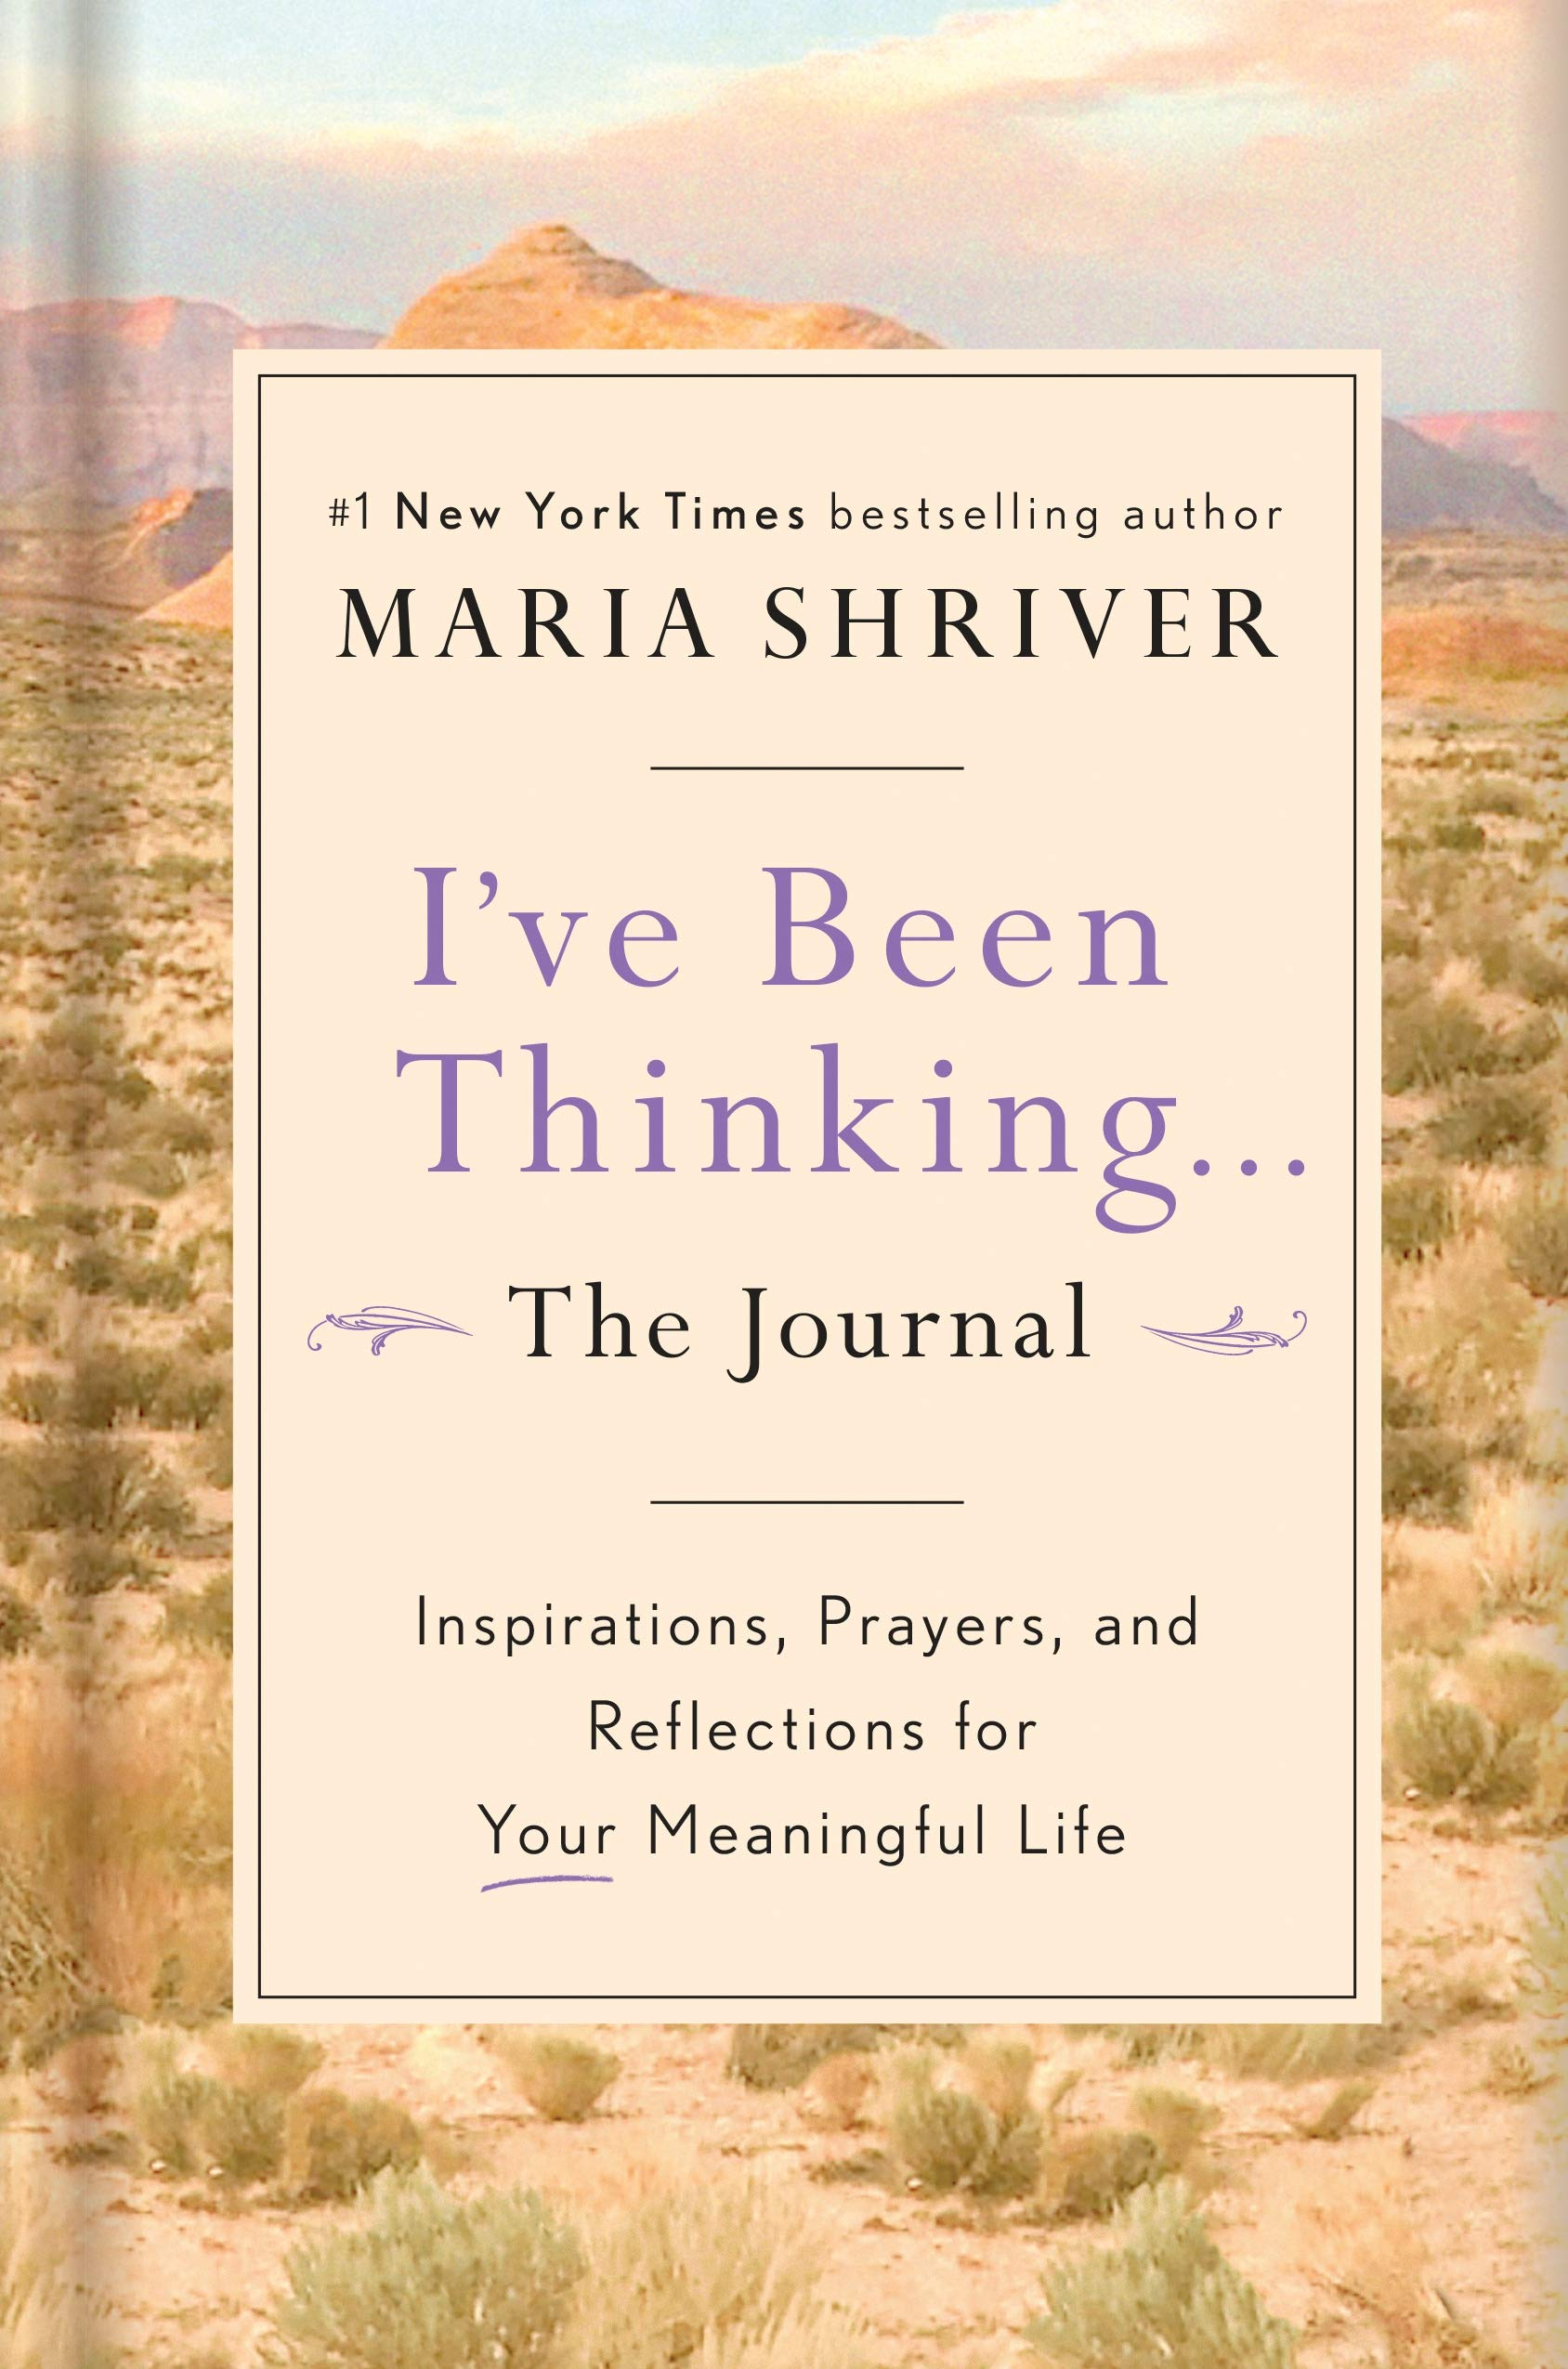 I've Been Thinking . . . The Journal: Inspirations, Prayers, and Reflections for Your Meaningful Life in hardcover. | Source: Amazon.cm